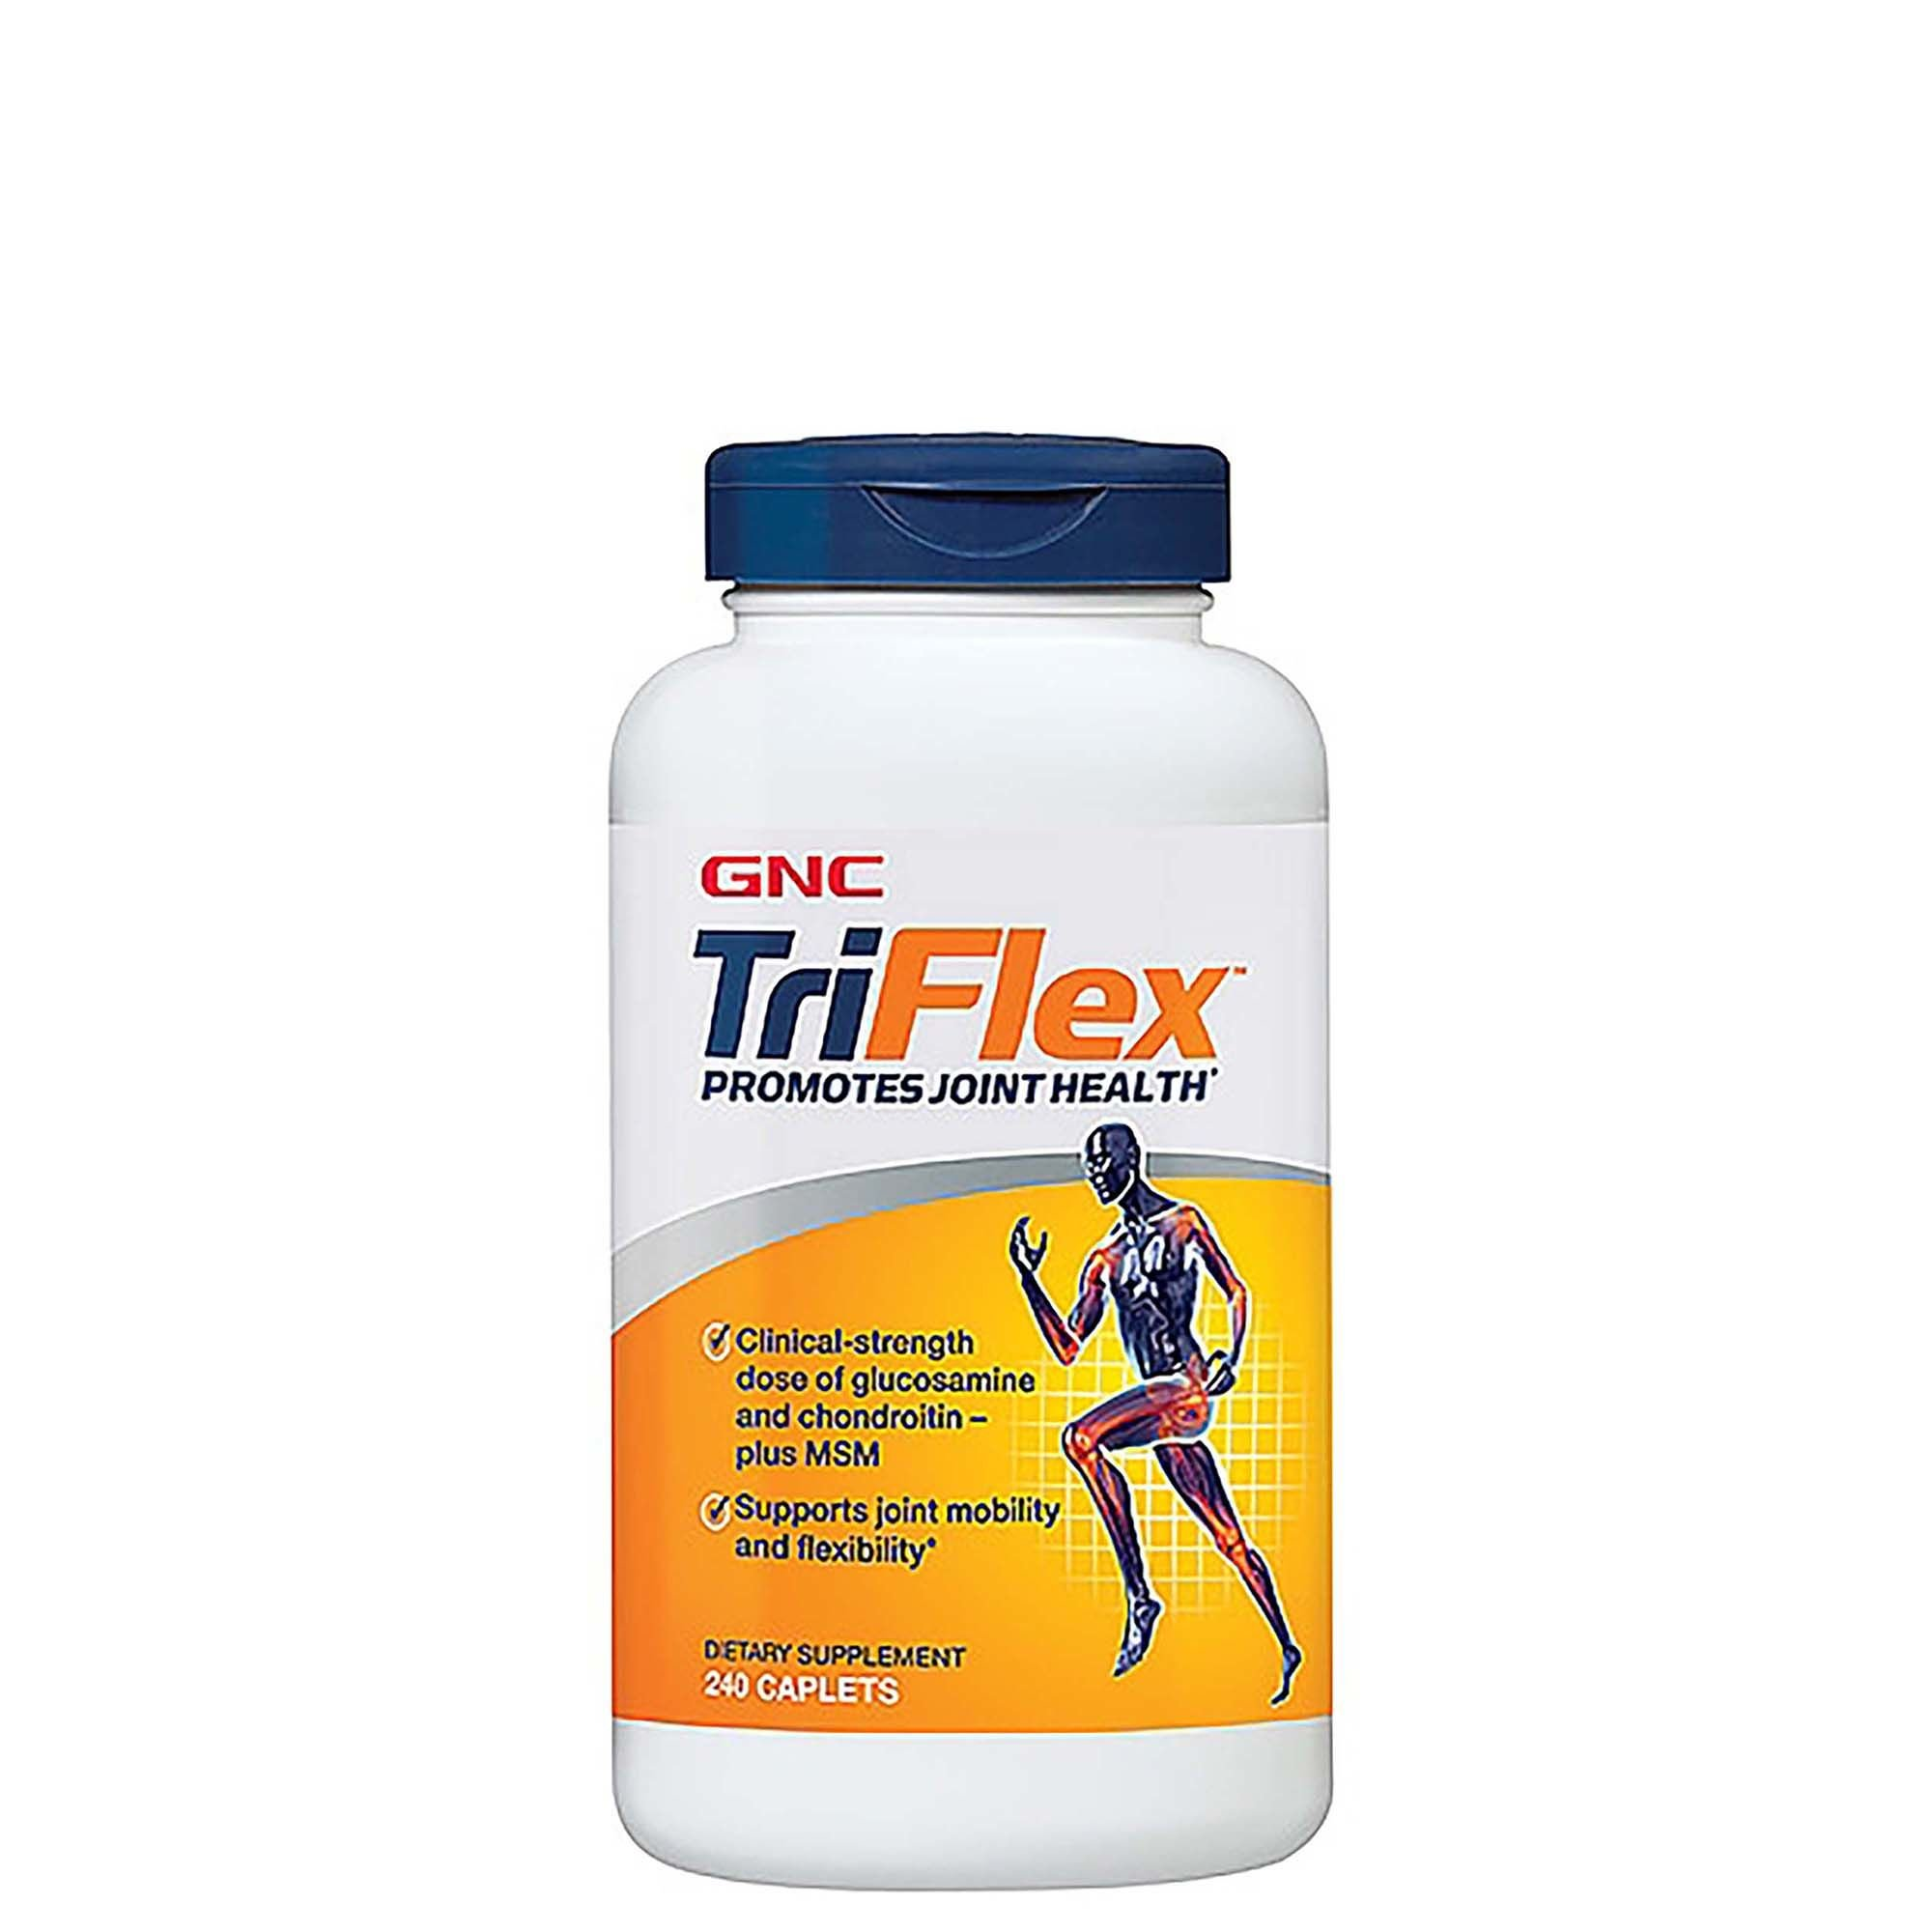 GNC TriFlex - Promotes Joint Health with Glucosamine, Chondroitin MSM - 240 Tablets